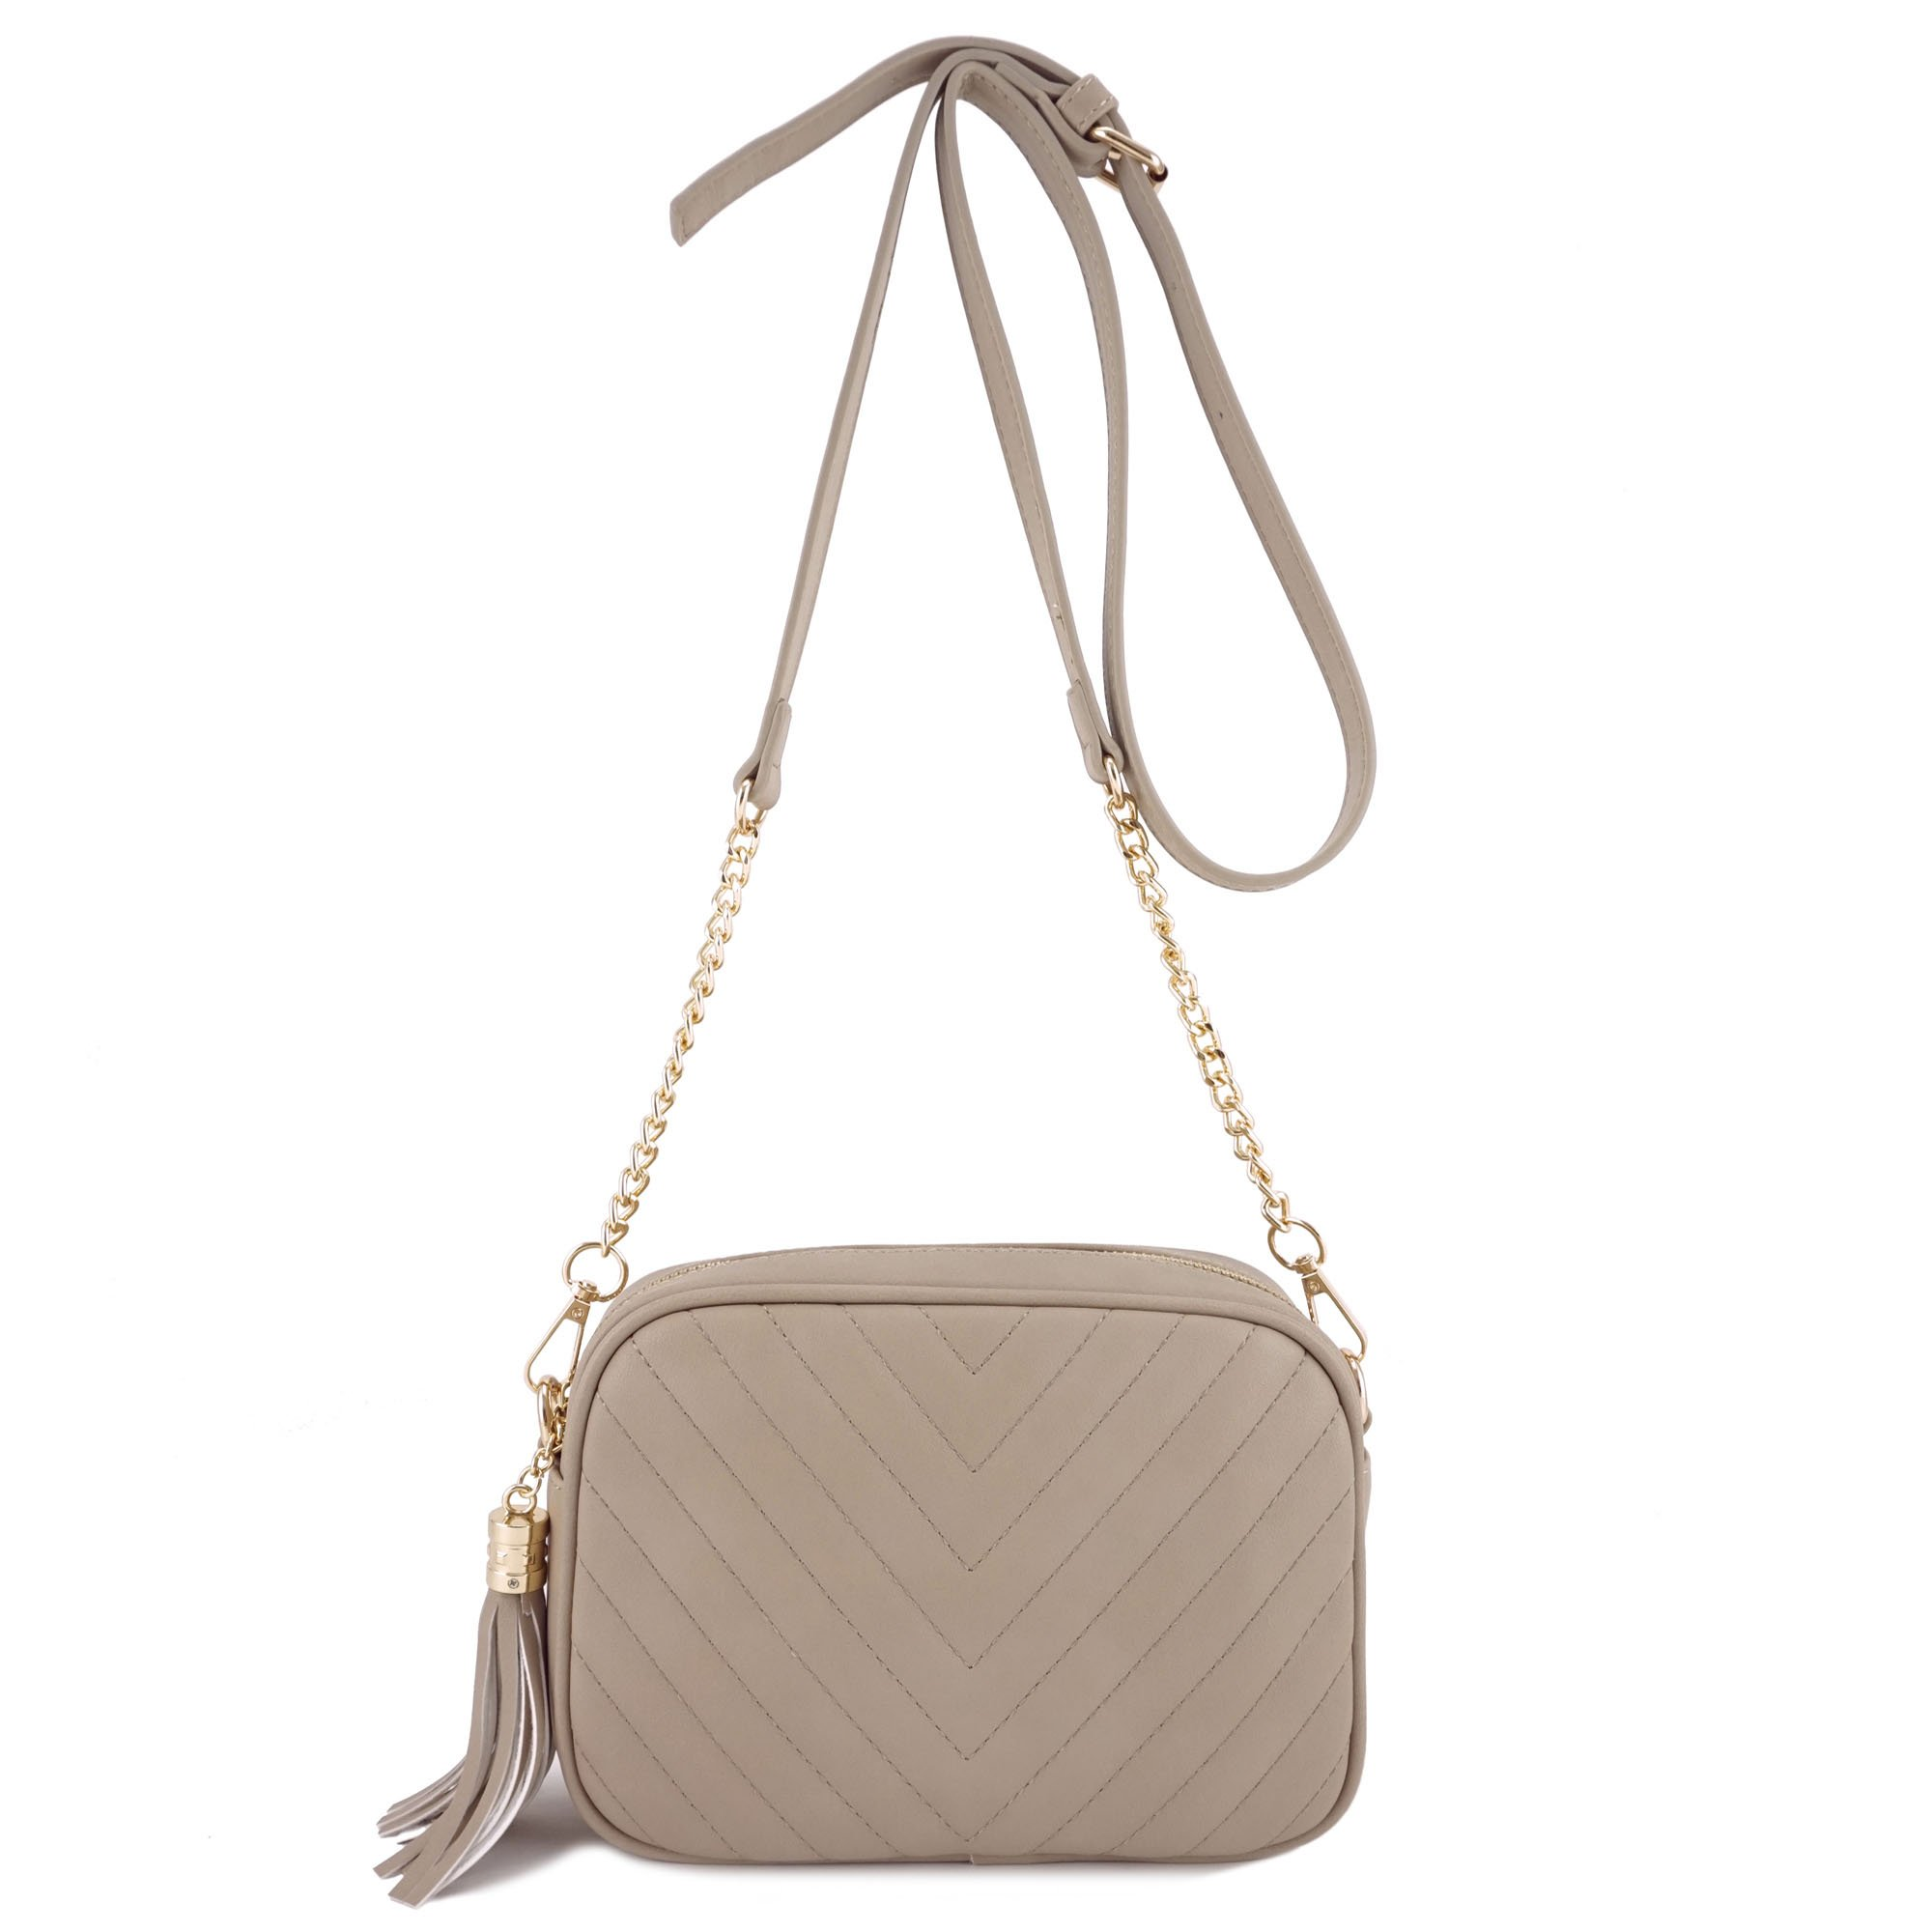 Simple Shoulder Crossbody Bag With Metal Chain Strap And Tassel Top Zipper (Taupe)